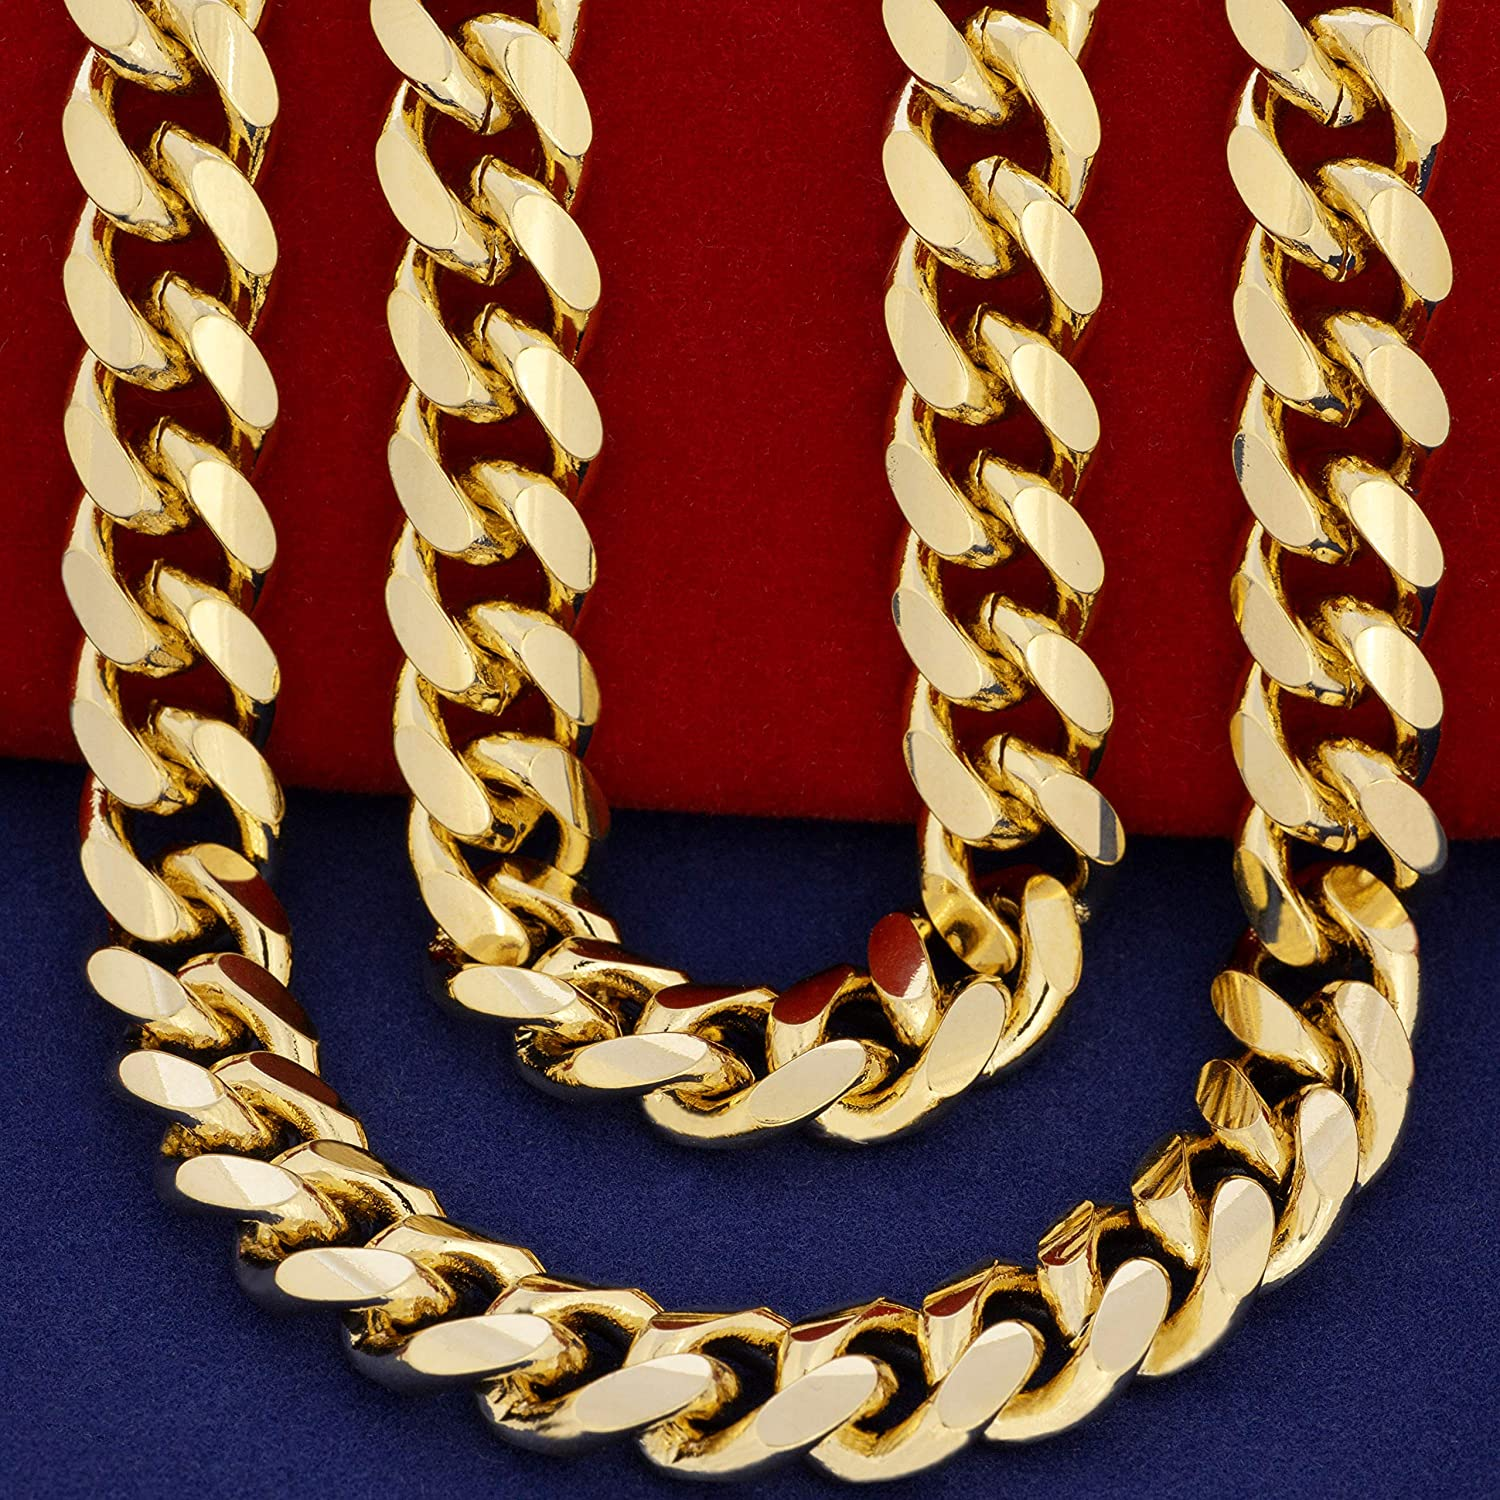 Lifetime Jewelry 11Mm Cuban Link Chain Necklace für Männer & Teen 24K Gold Plated mit Free Lifetime Replacement Guarantee